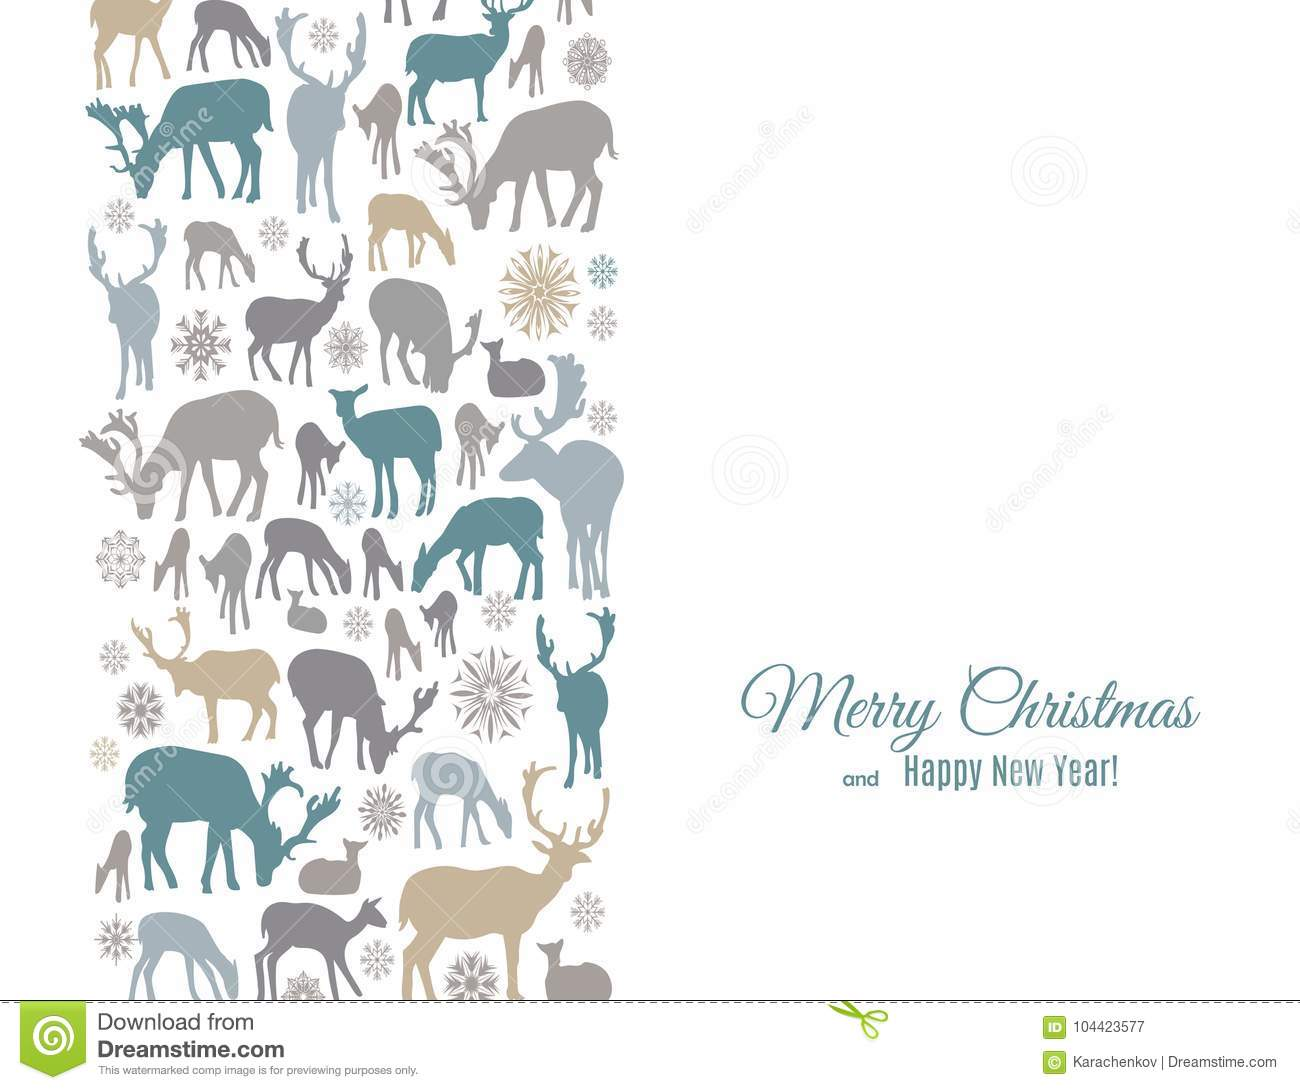 merry christmas and happy new year greeting card with deers and snowflakes pattern vertical border on